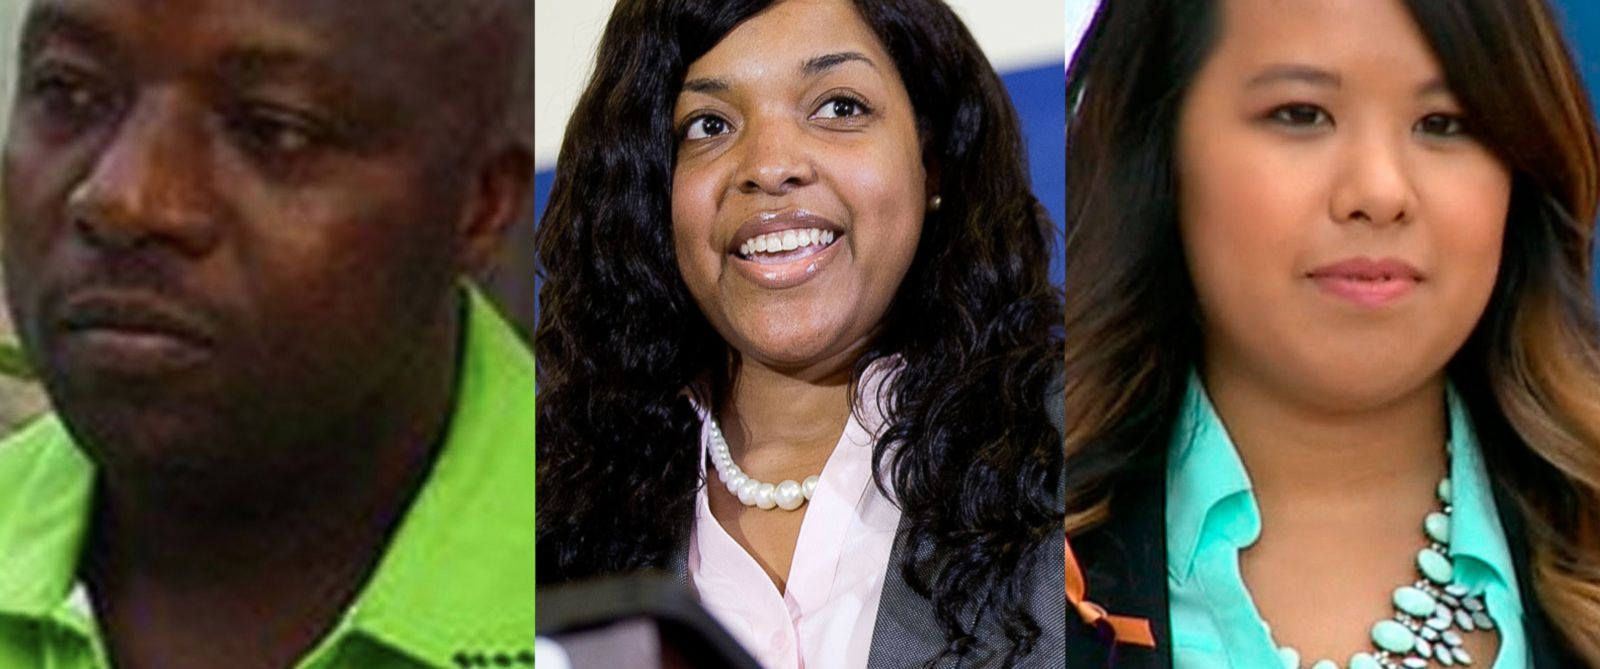 PHOTO: Thomas Eric Duncan, the first U.S. Ebola patient. | Ebola survivor Amber Vinson at a news conference on Oct. 28, 2014 in Atlanta. | Ebola survivor Nina Pham at a press conference on Oct. 24, 2014.